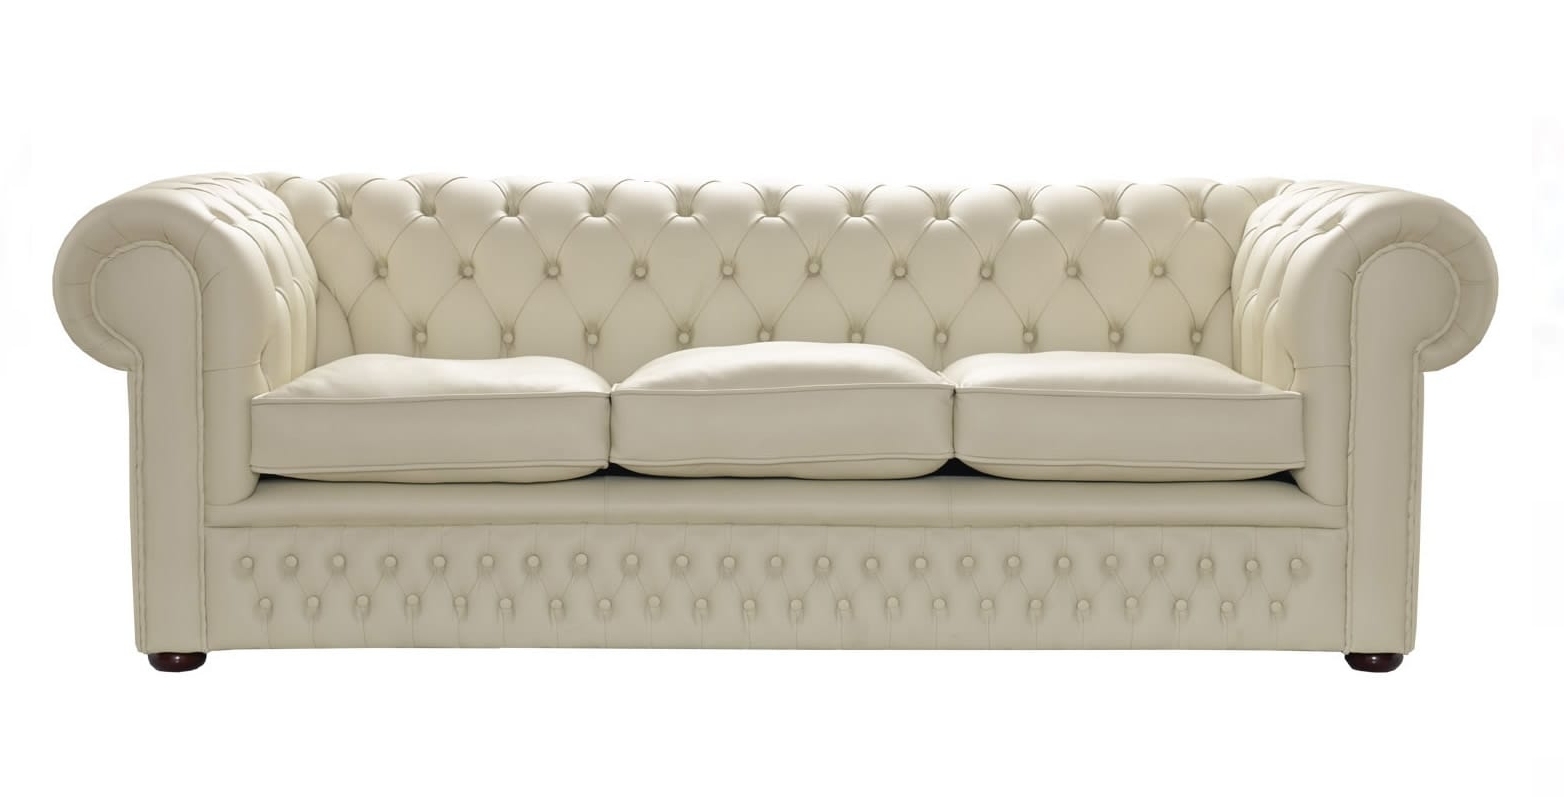 Leather Chesterfield Sofas Within Best And Newest Cream Leather Chesterfield Sofa, Handcrafted In The Uk (View 6 of 15)